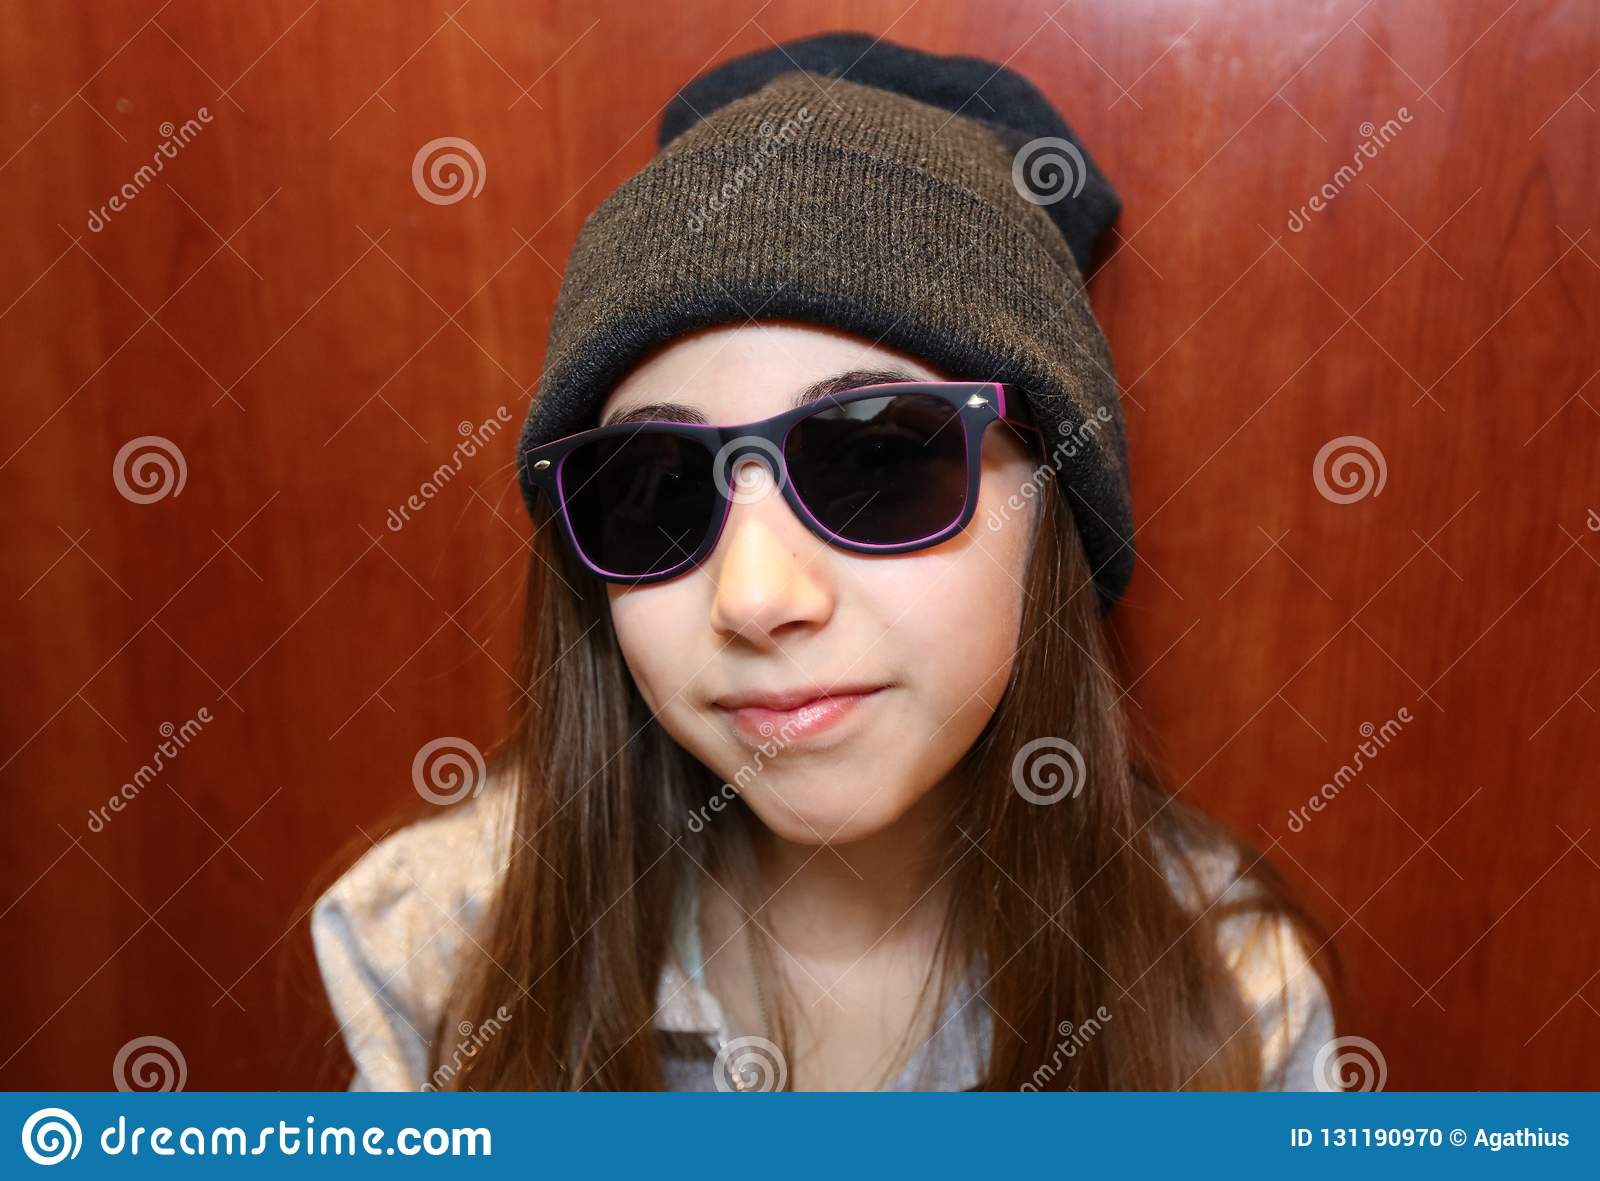 Cute little girl smiling wearing white and black sunglasses